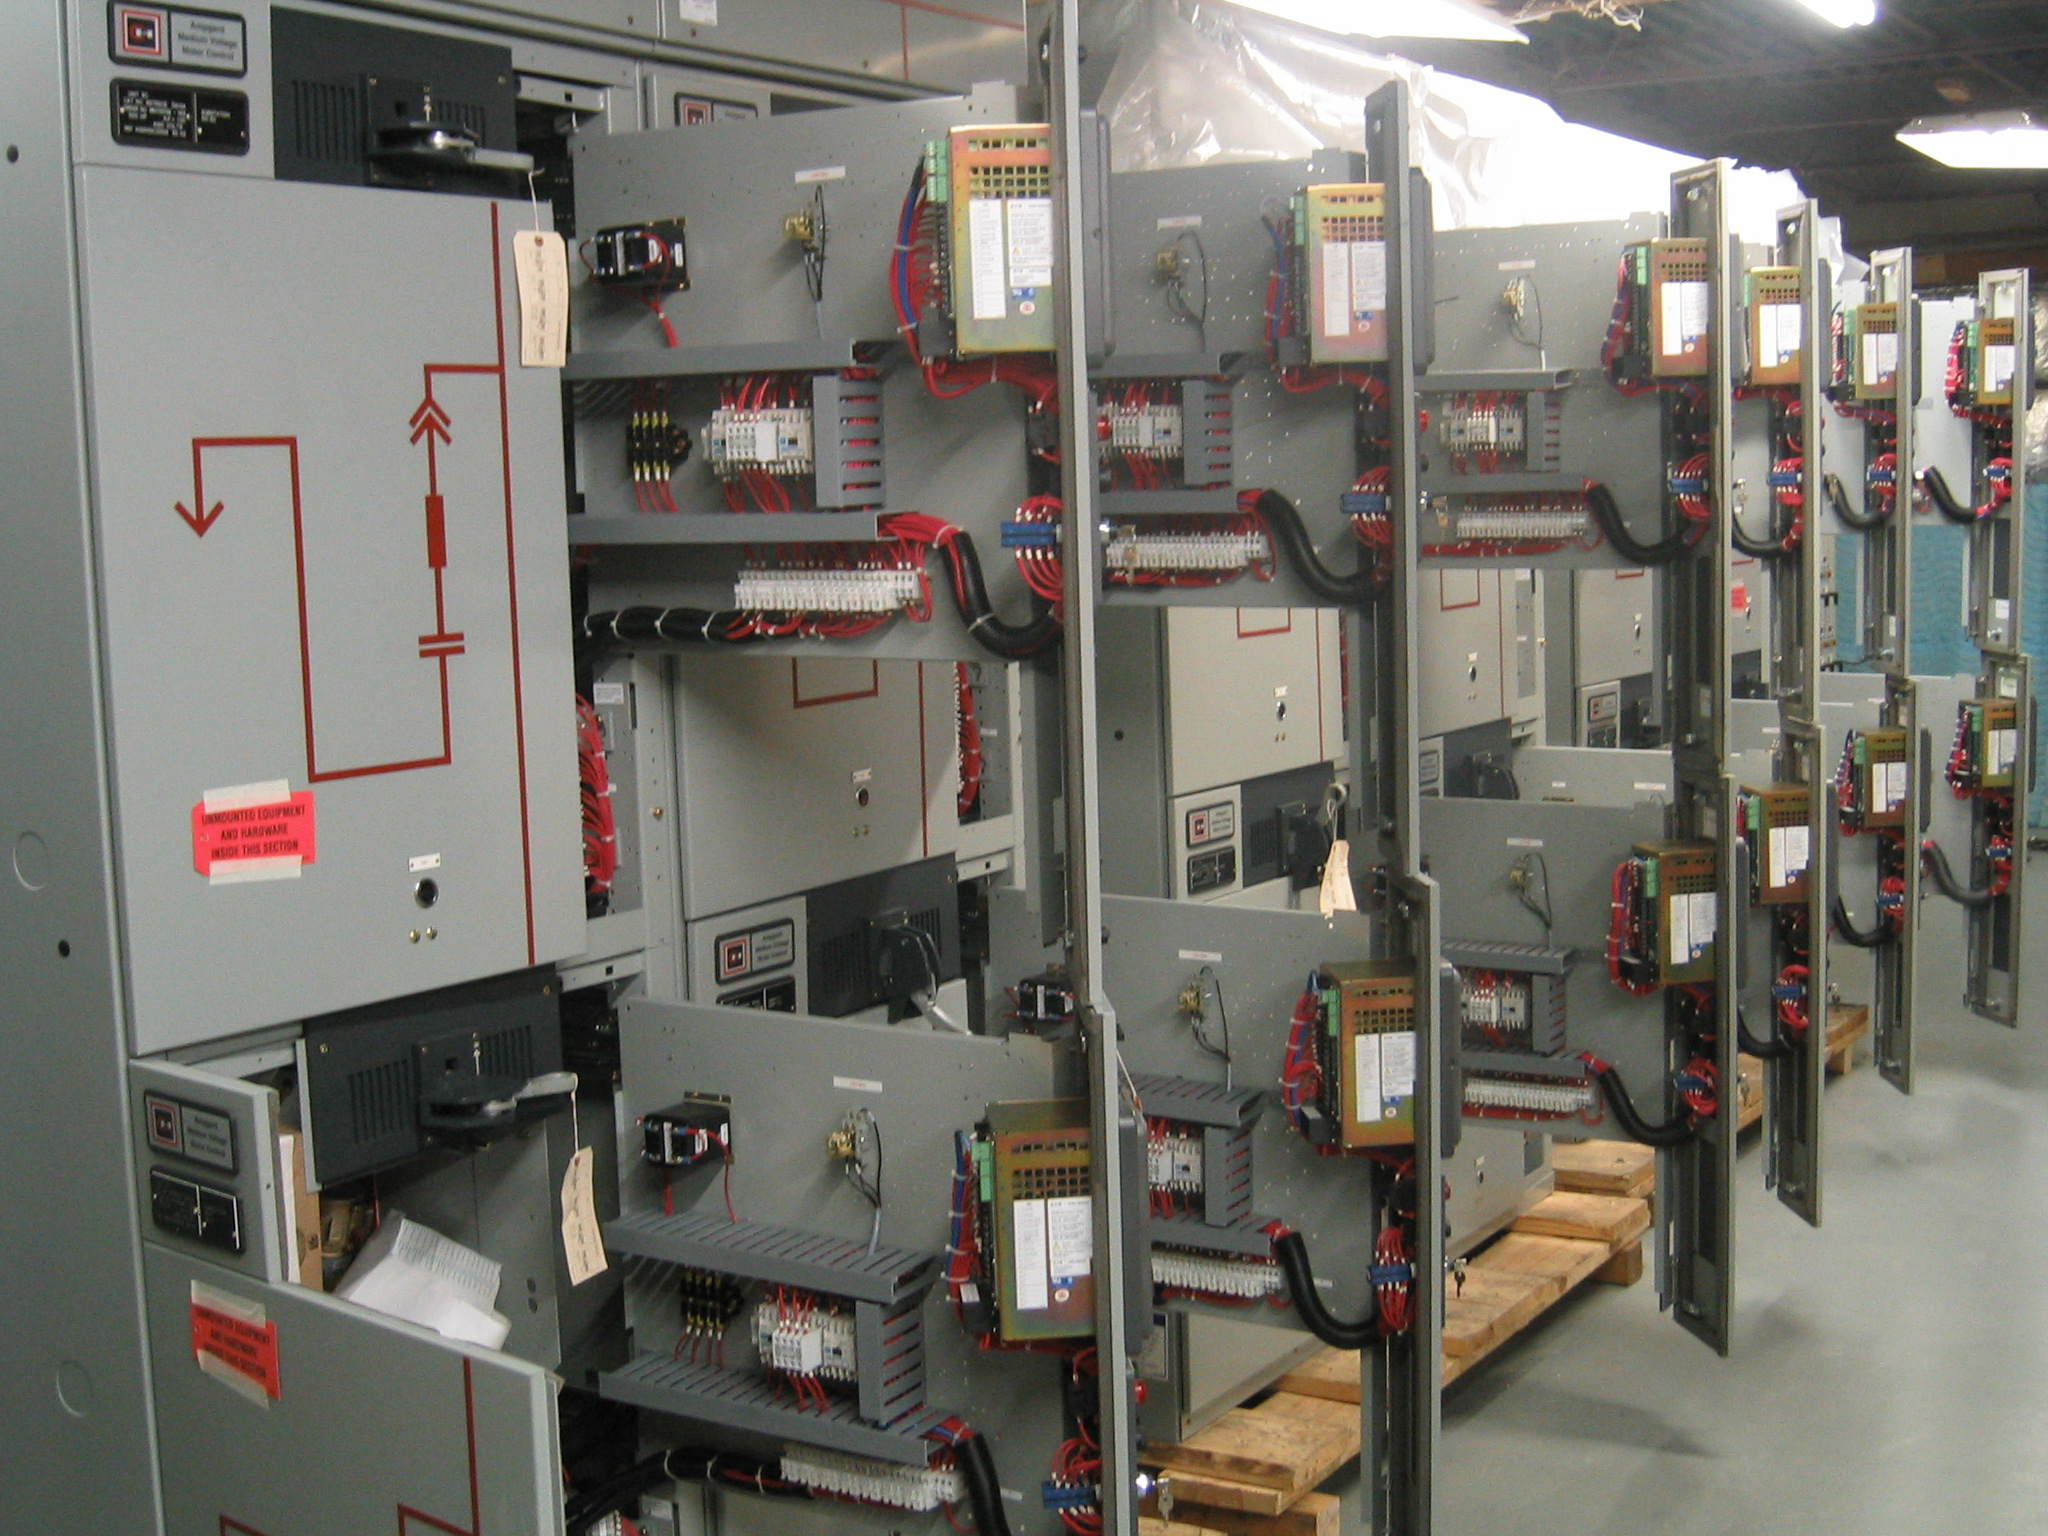 Cheap Acetazolamide Purchase From Canada Sage Controls Inc Duplex Panel This Controller Includes Circuit Breakers And Cat7 Simplex Pump Control Panels